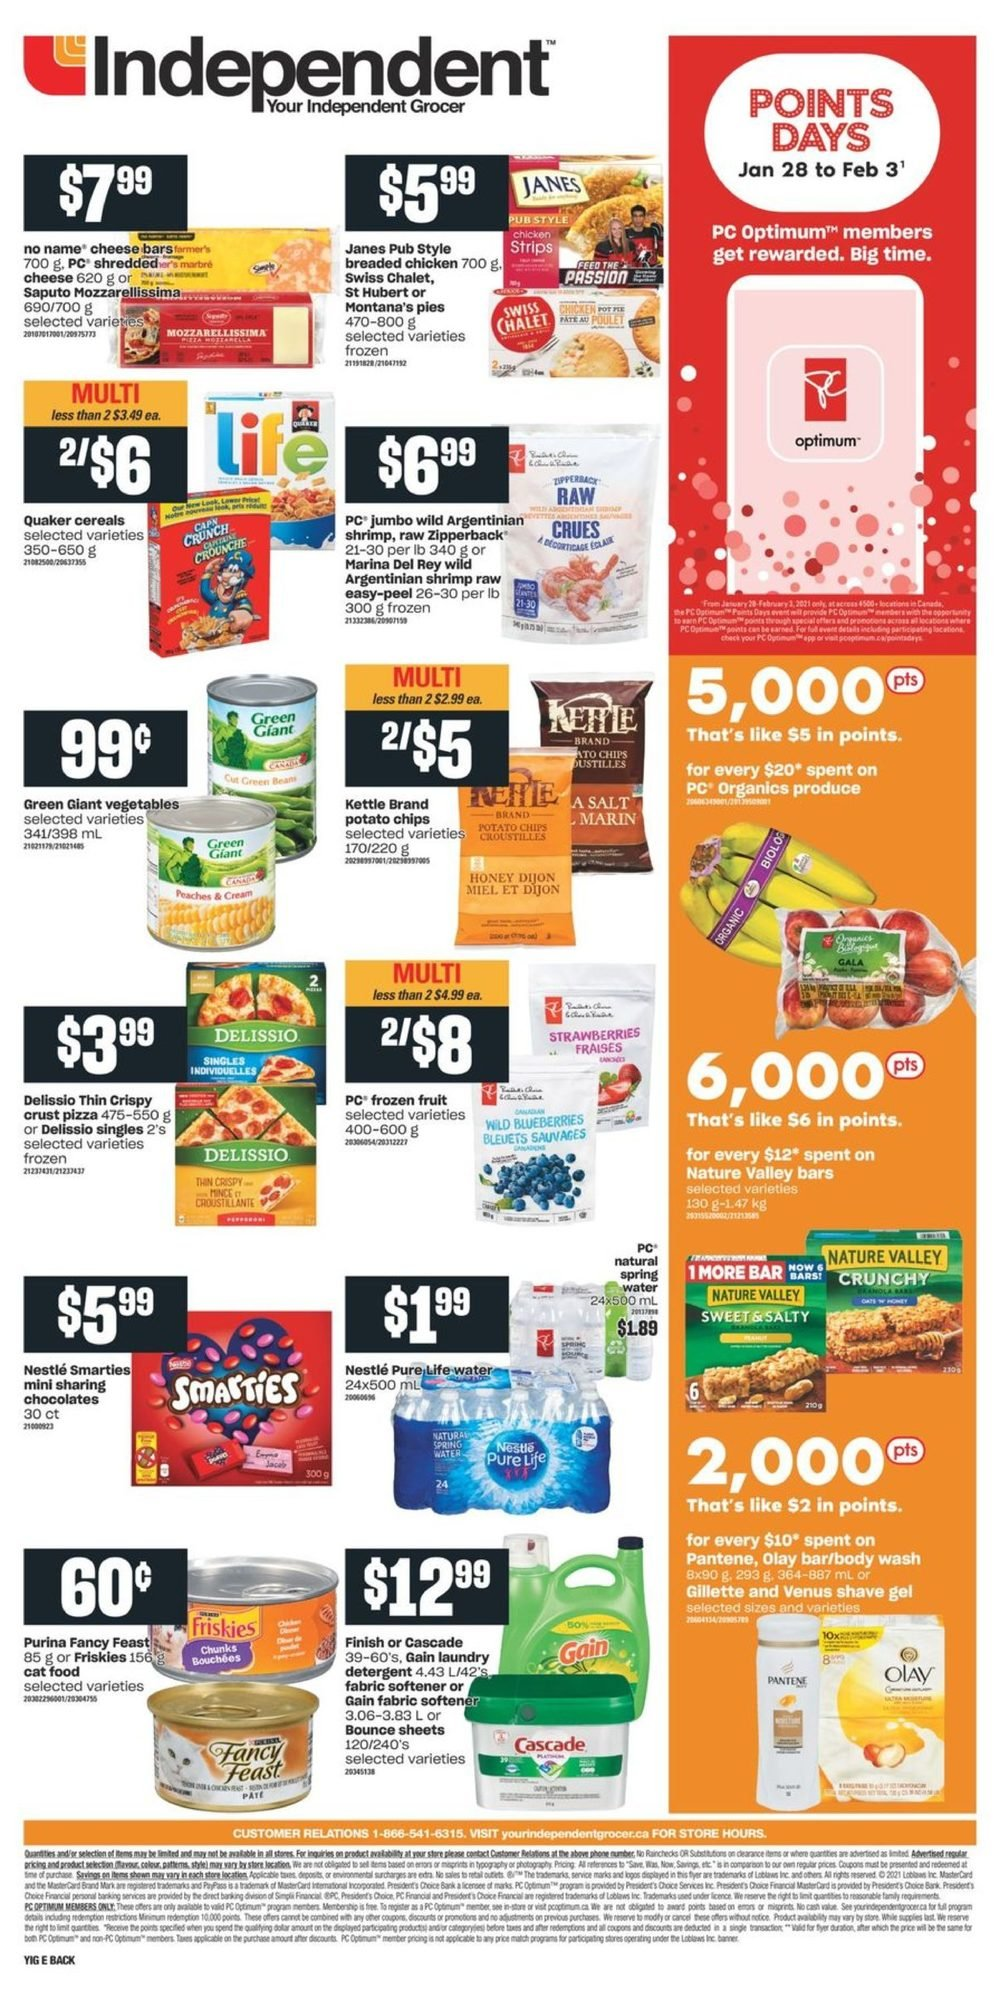 Independent - Weekly Flyer Specials - Page 4